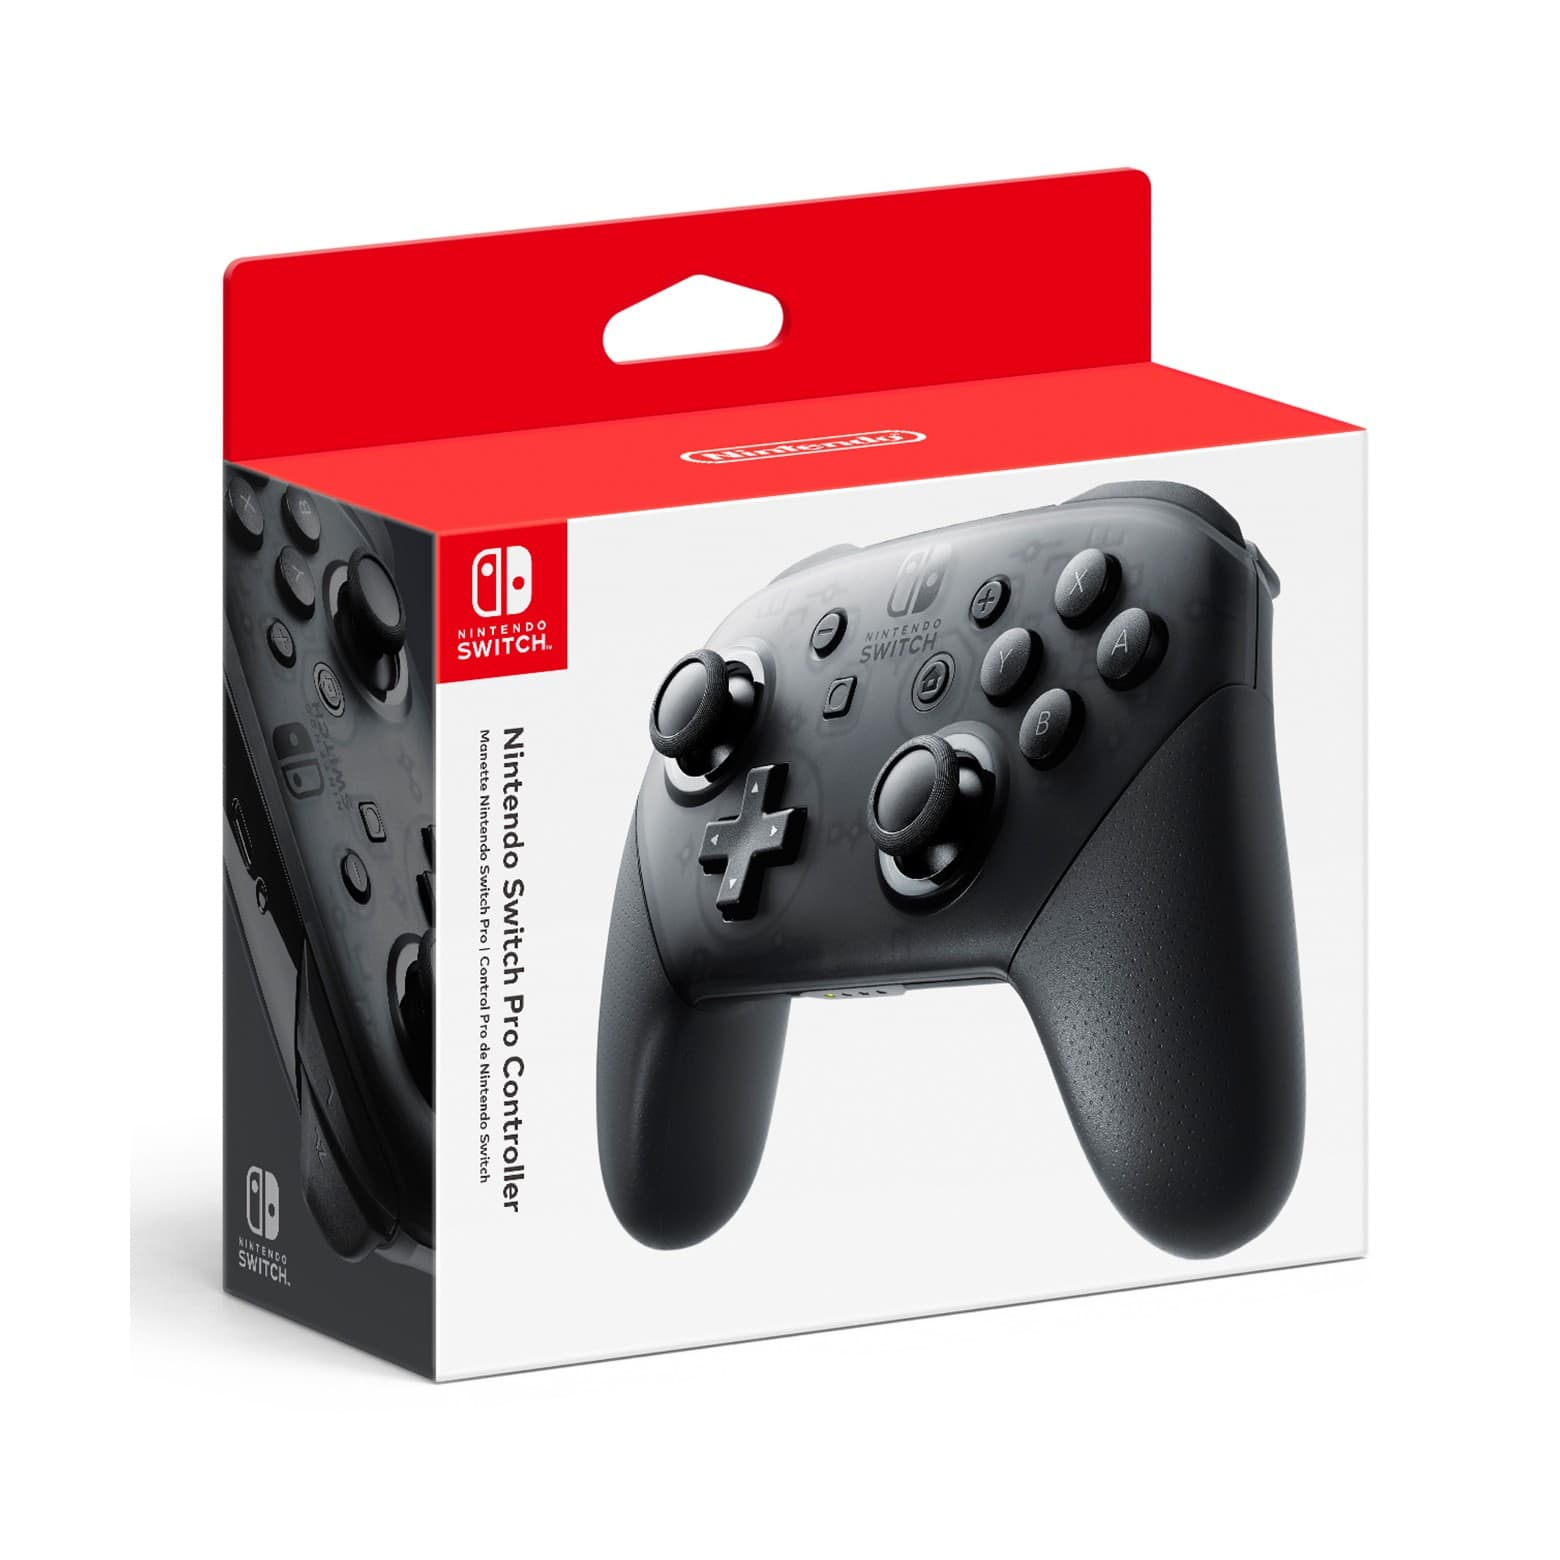 Target 20% off coupon works on Nintendo Switch Accessories